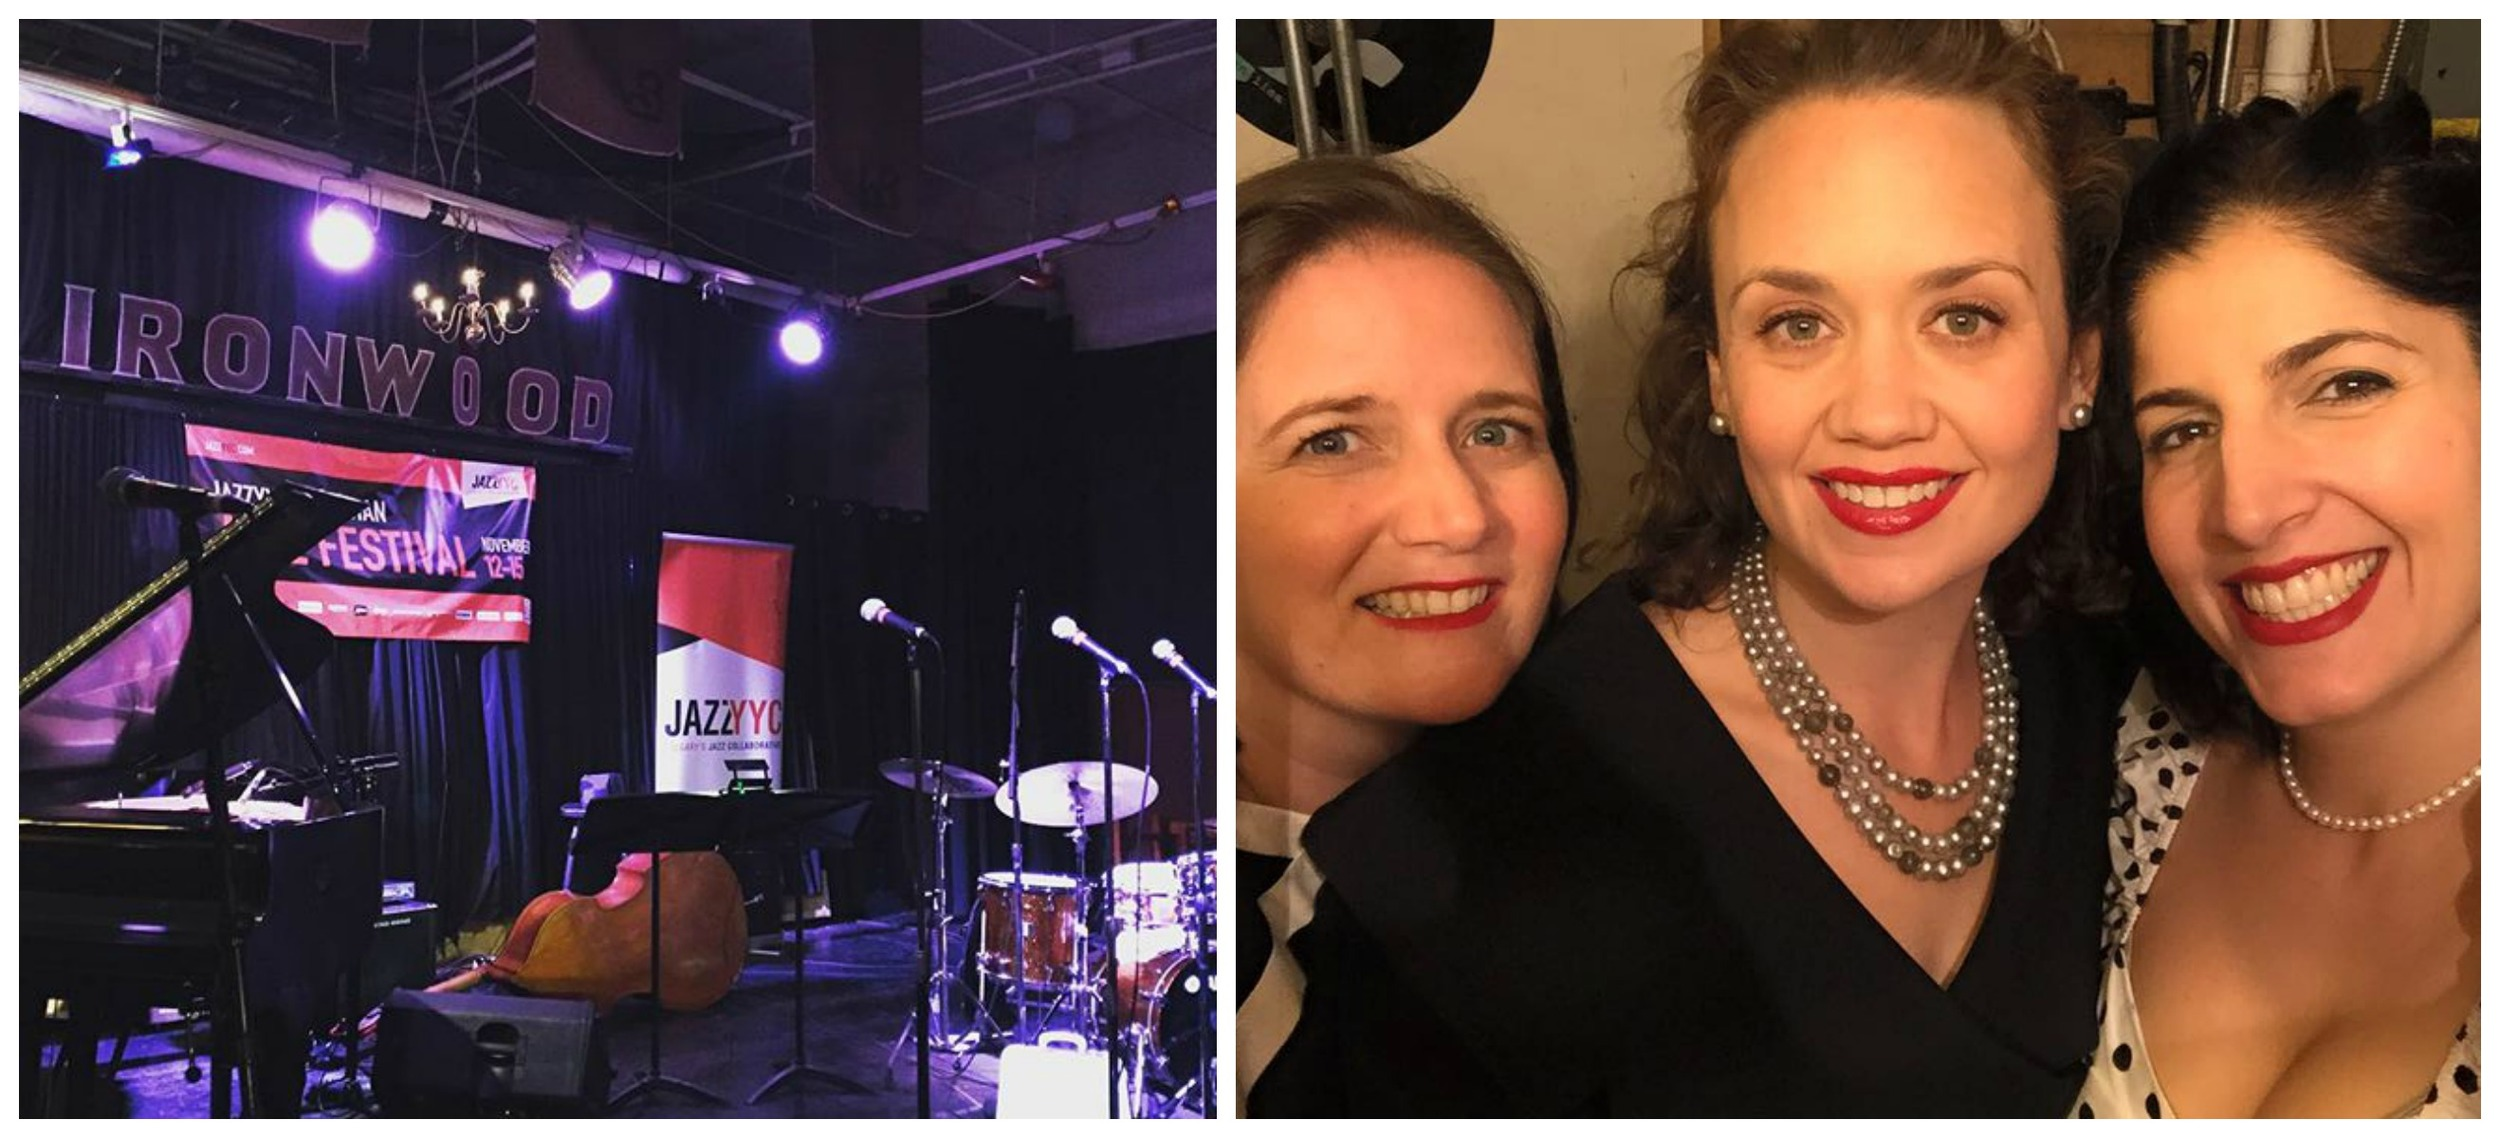 L: the Ironwood Stage in Calgary, Alberta. R: backstage, pre-show.